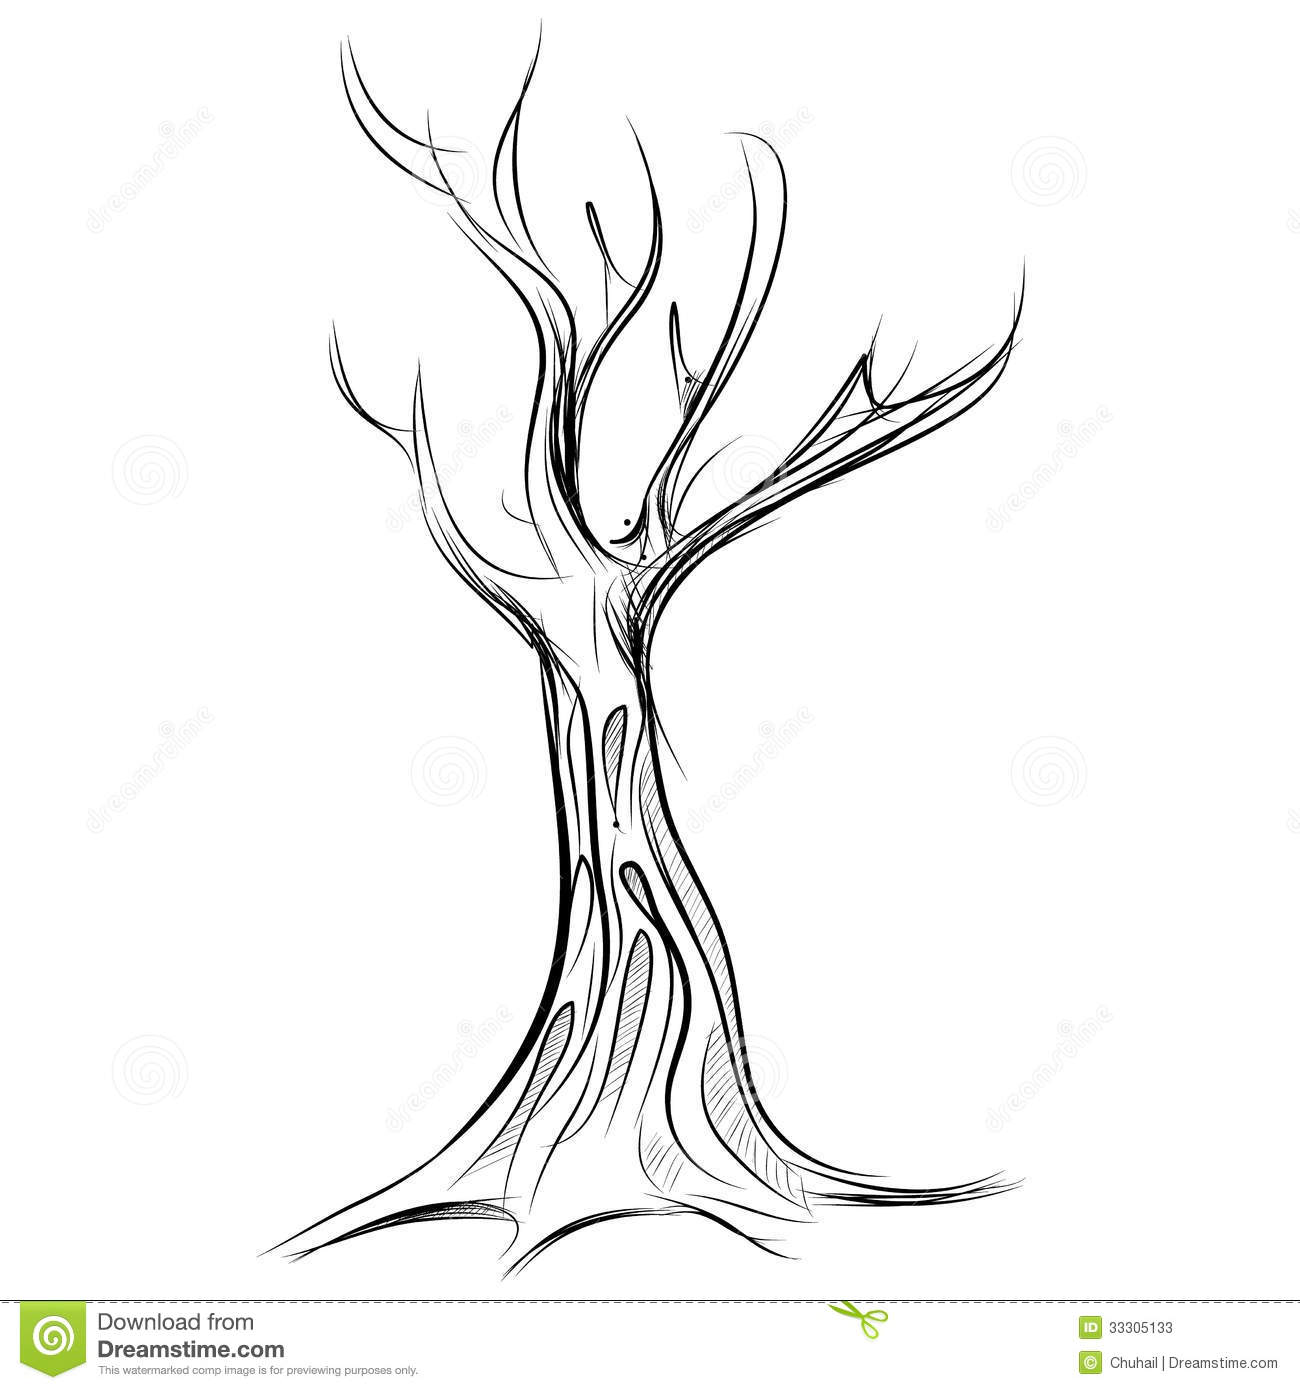 Tree Cartoon Icon Isolated On White Stock Vector - Illustration Of Icon Outline 33305133